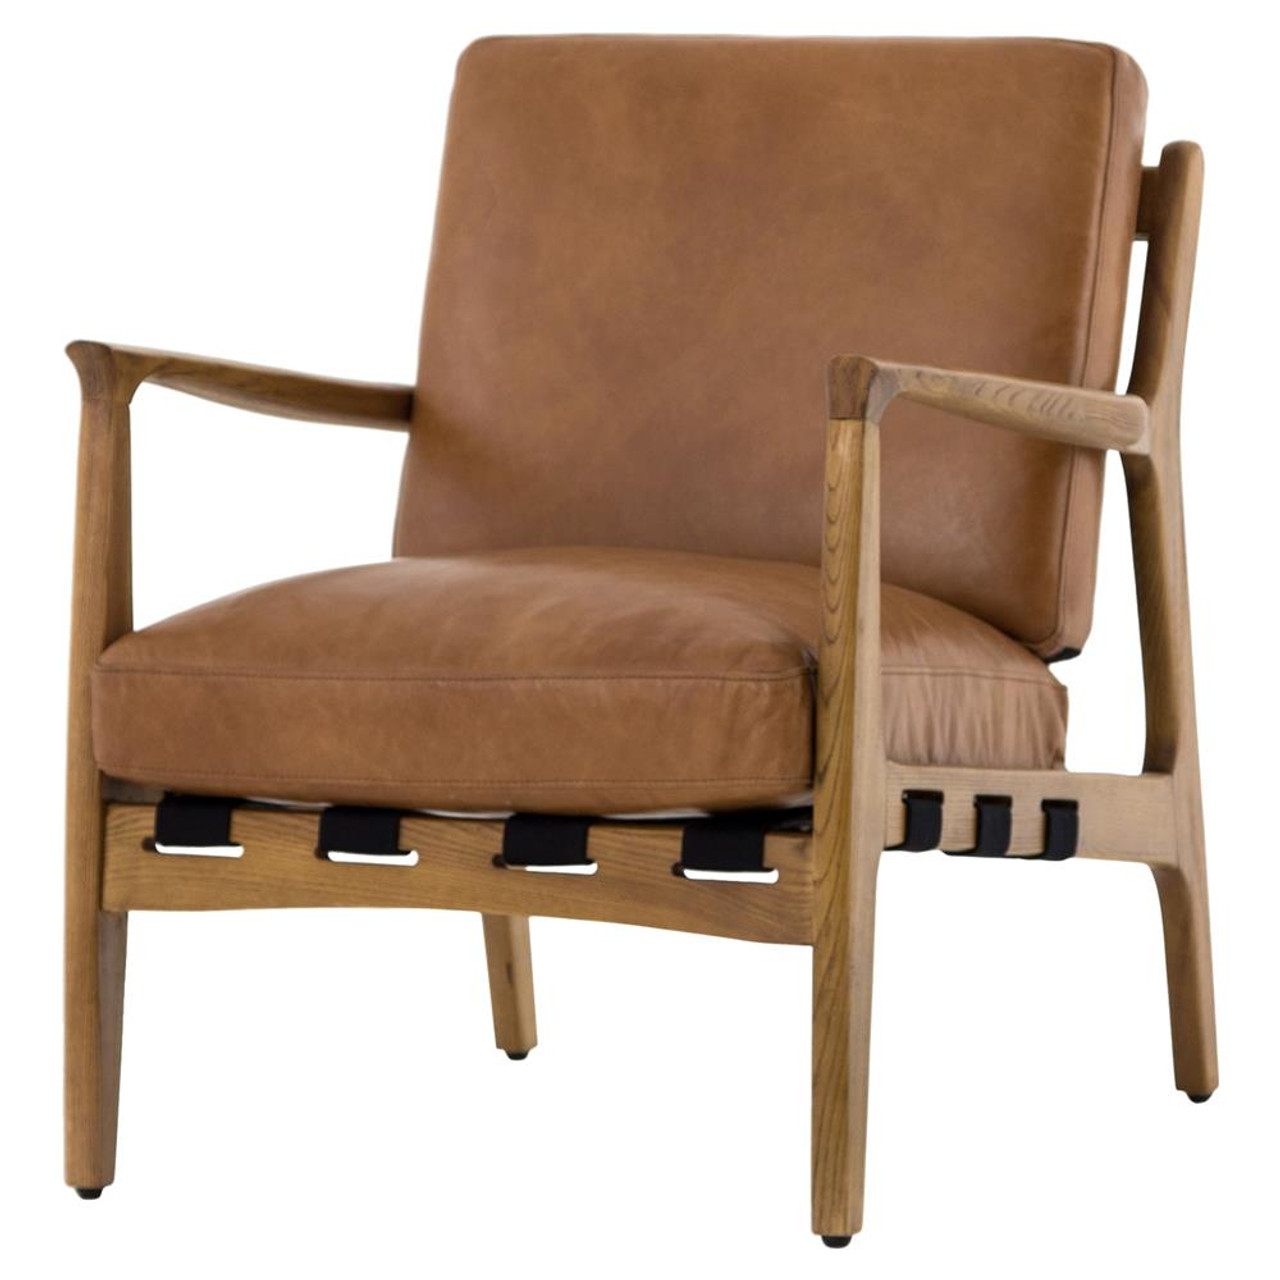 Arm Chairs Silas Mid Century Modern Tan Leather Arm Chair